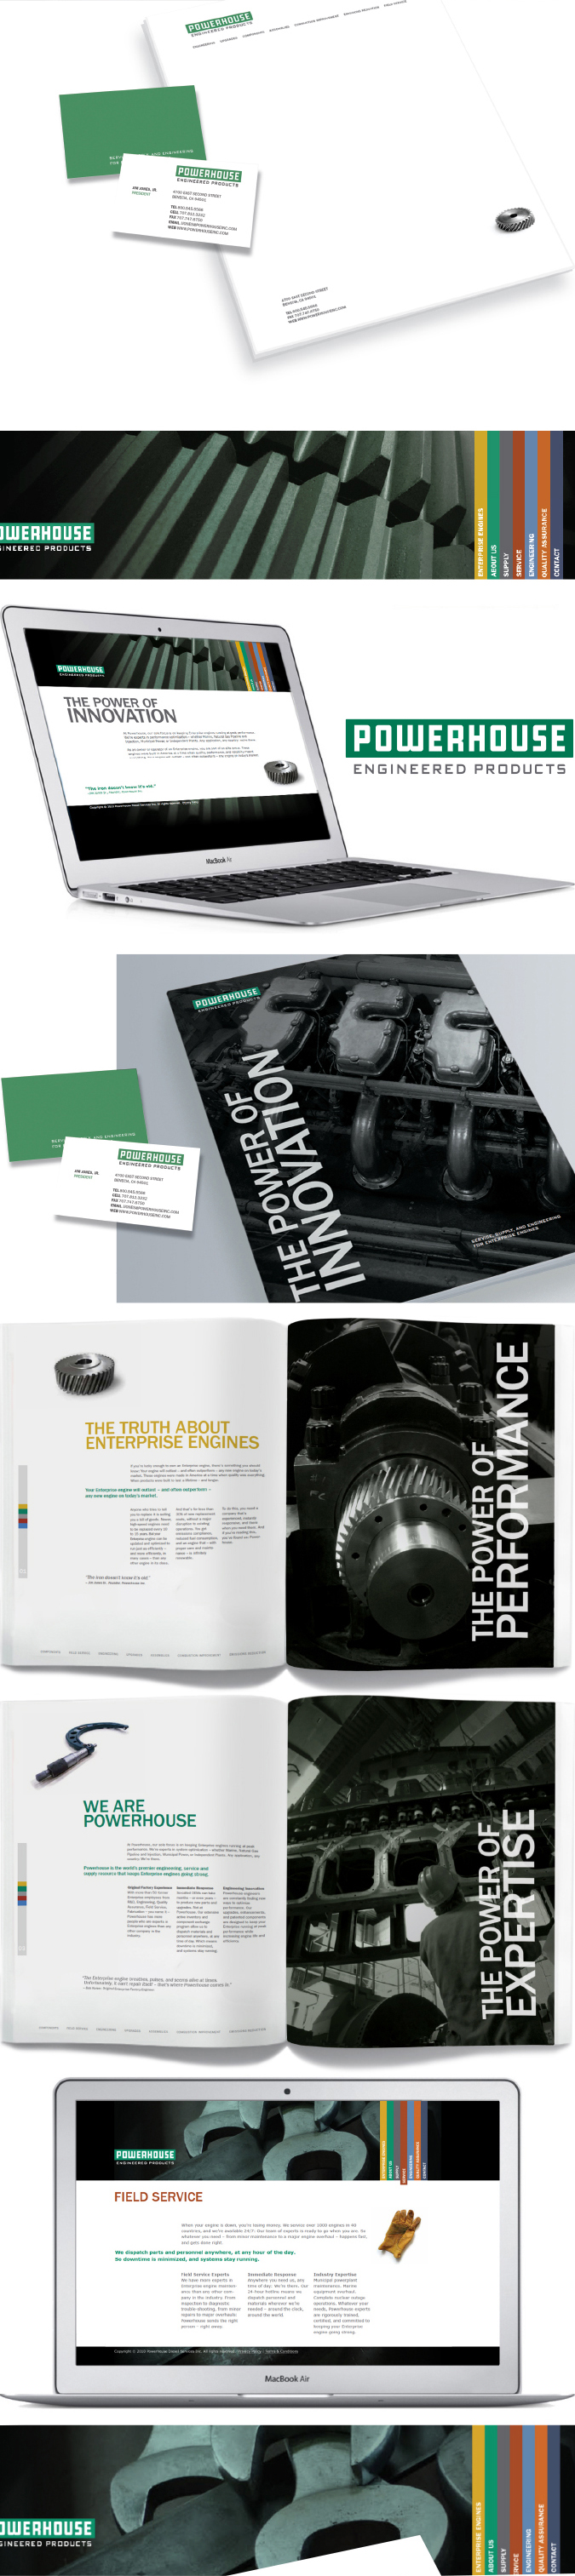 Powerhouse Case Study Images